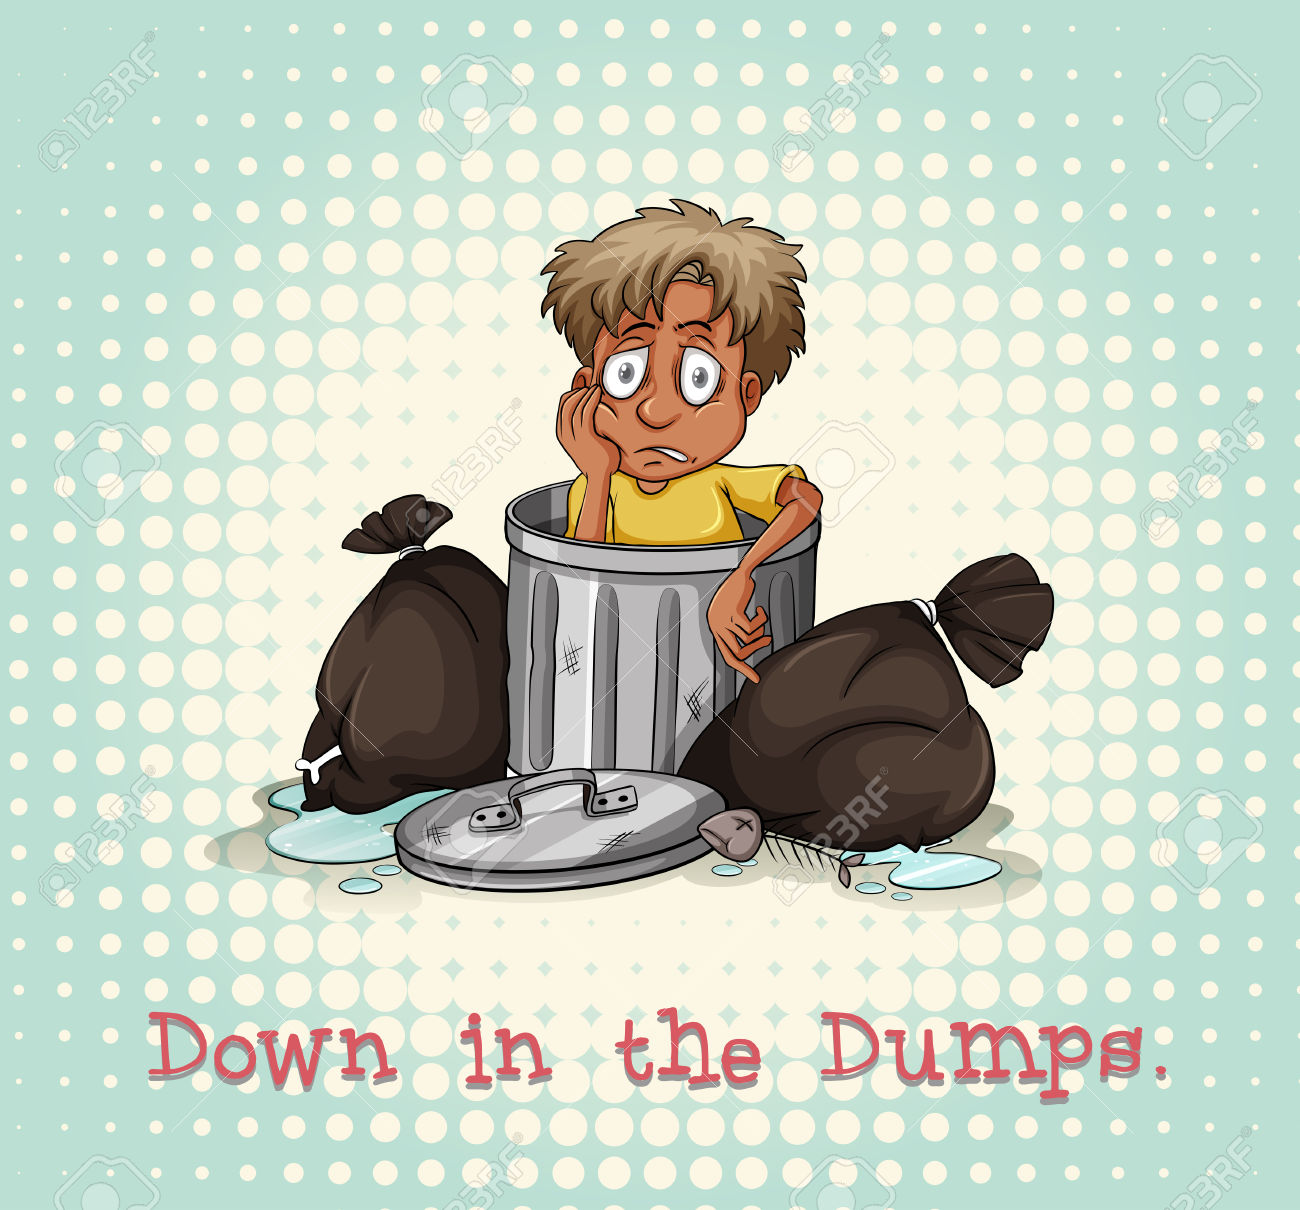 Idiom Down In The Dumps Illustration Royalty Free Cliparts.